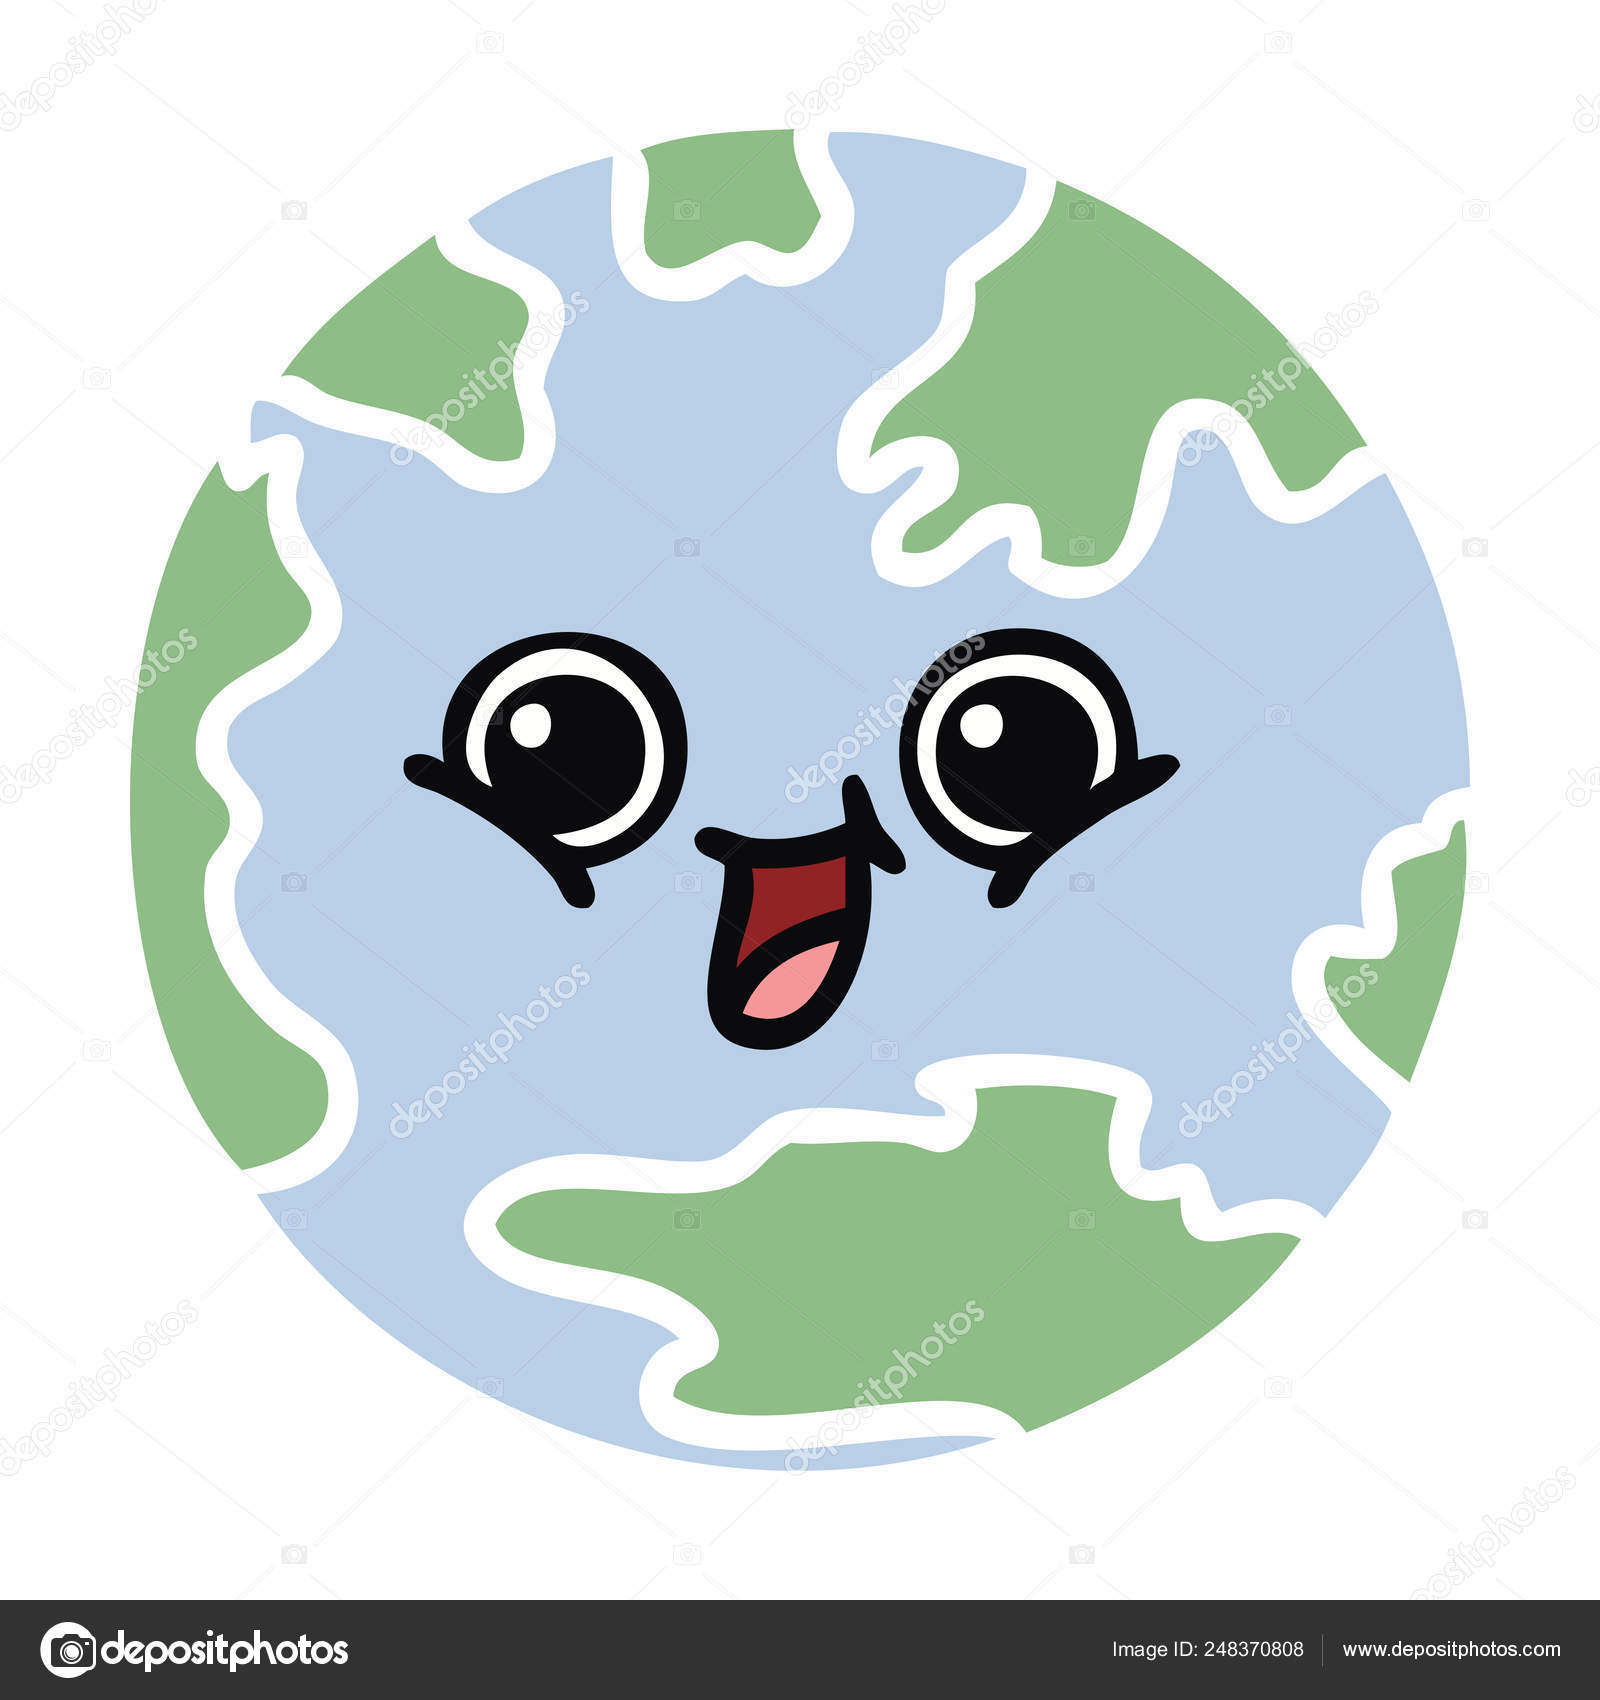 Flat Color Retro Cartoon Planet Earth — Stock Vector concernant Image De La Terre Dessin